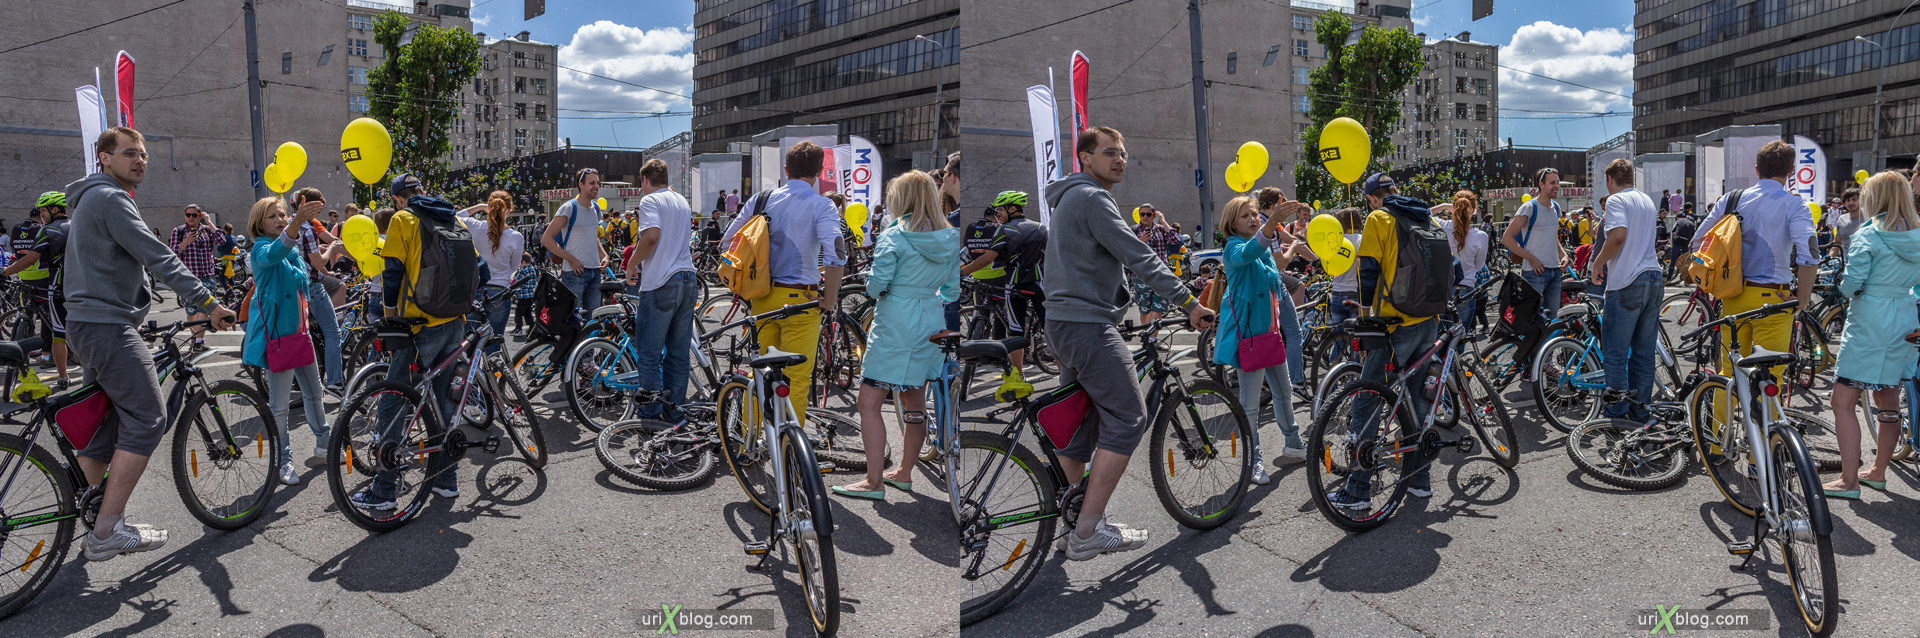 2014, bicycle, parade, Moscow, Russia, Garden Ring avenue, summer, june, 3D, stereo pair, cross-eyed, crossview, cross view stereo pair, stereoscopic